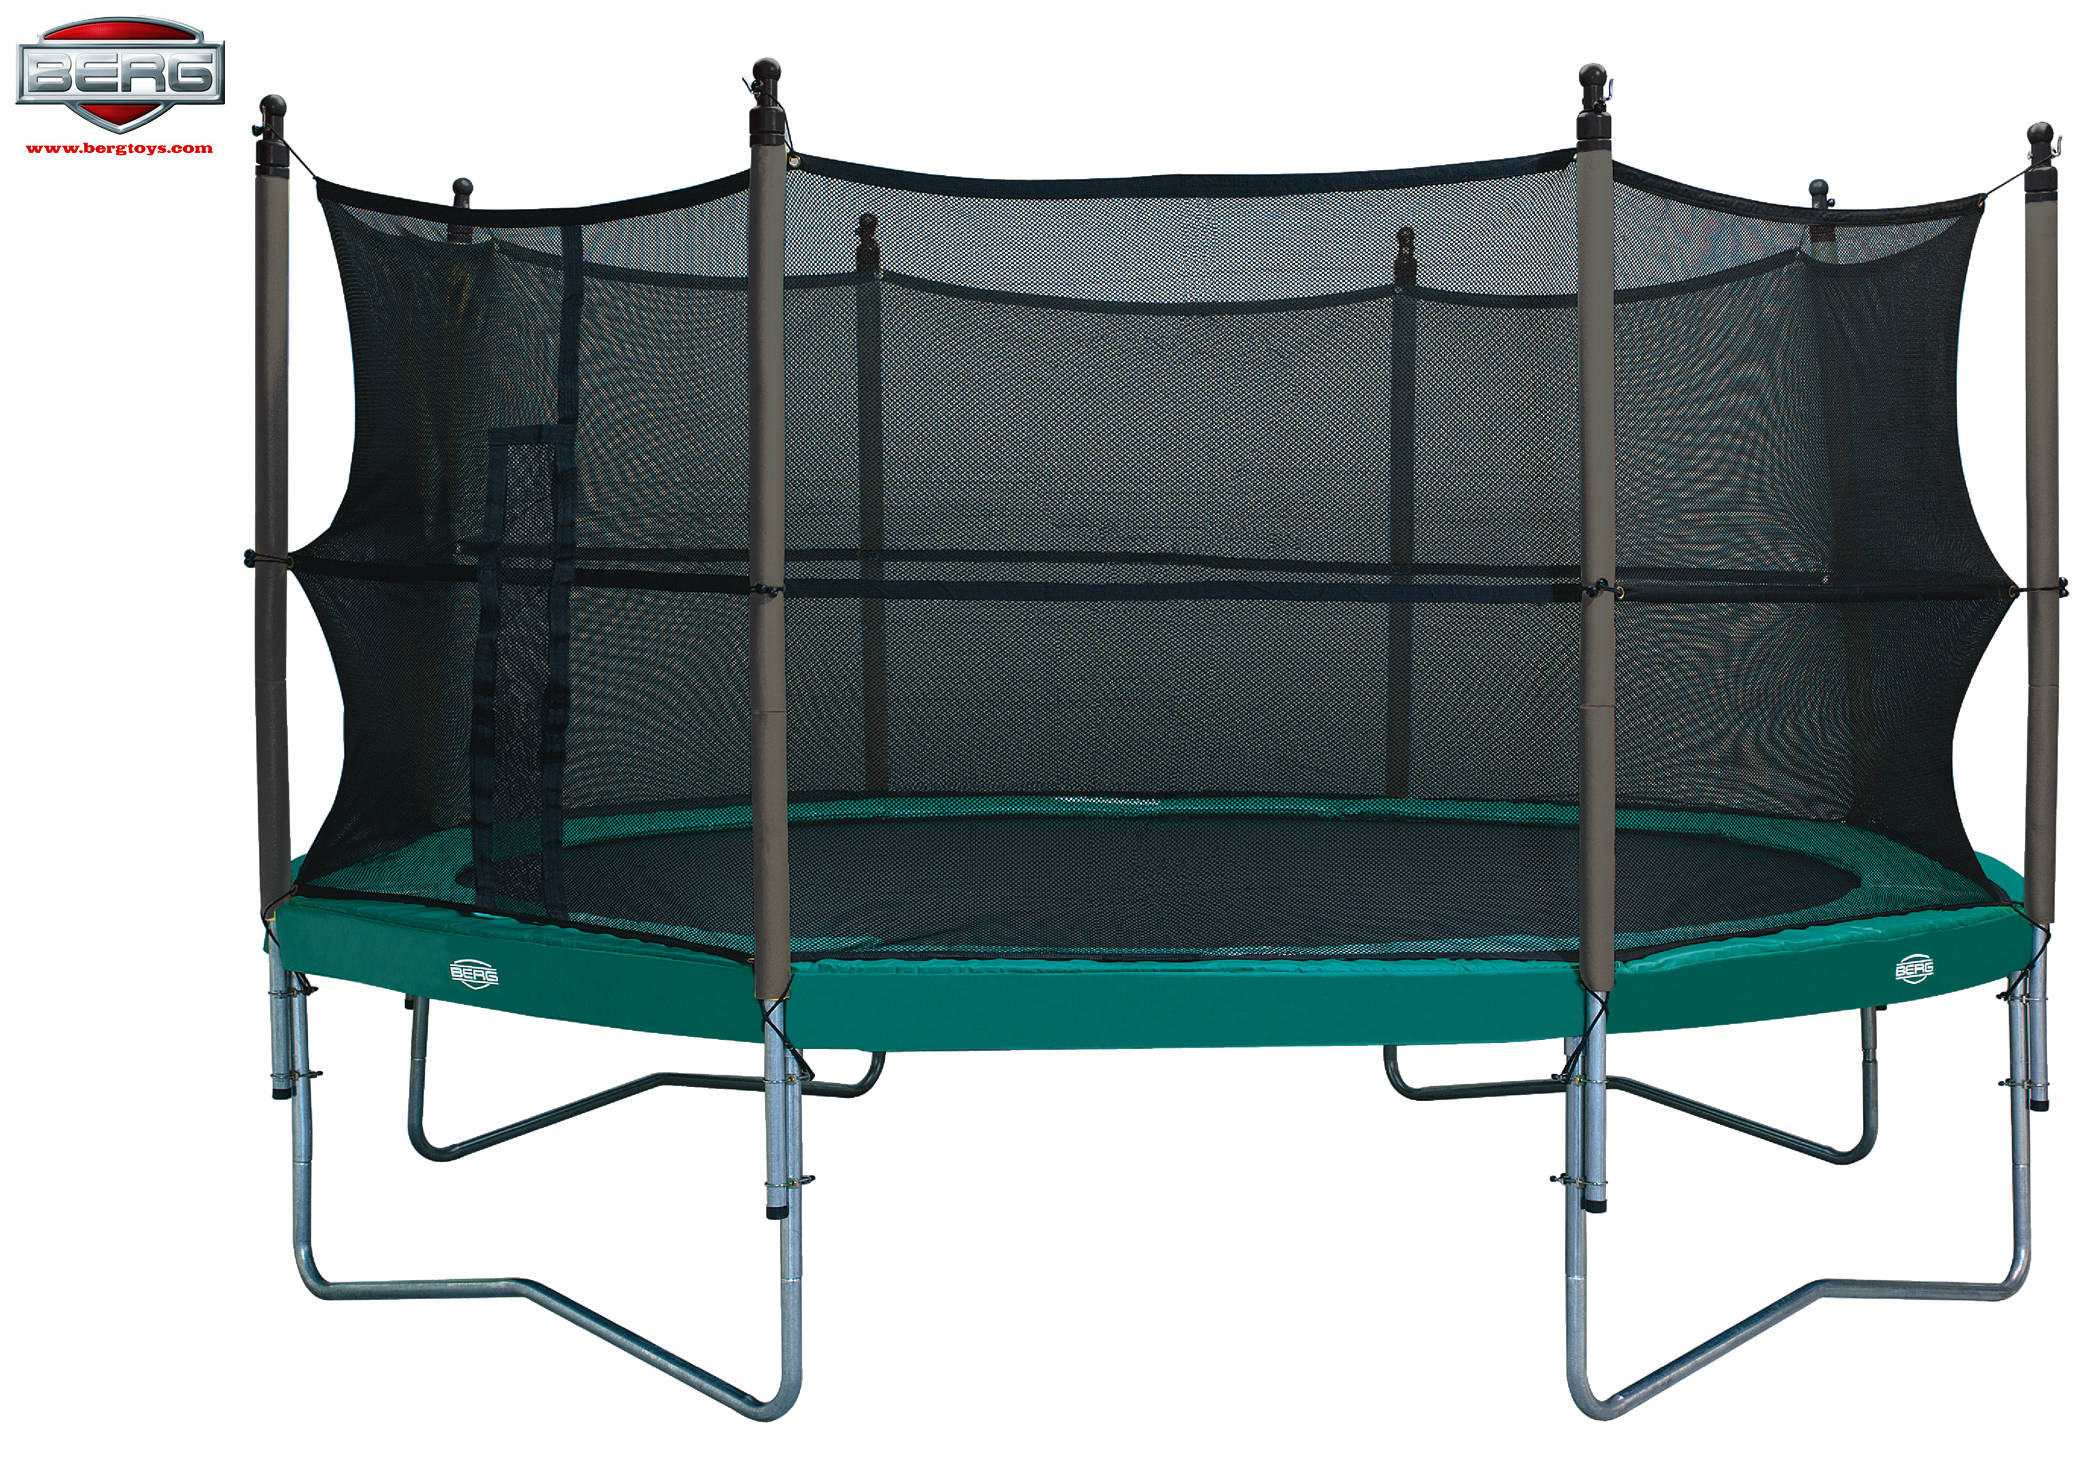 sicherheitsnetz 430 f r trampolin von bergtoys sonntag toys. Black Bedroom Furniture Sets. Home Design Ideas